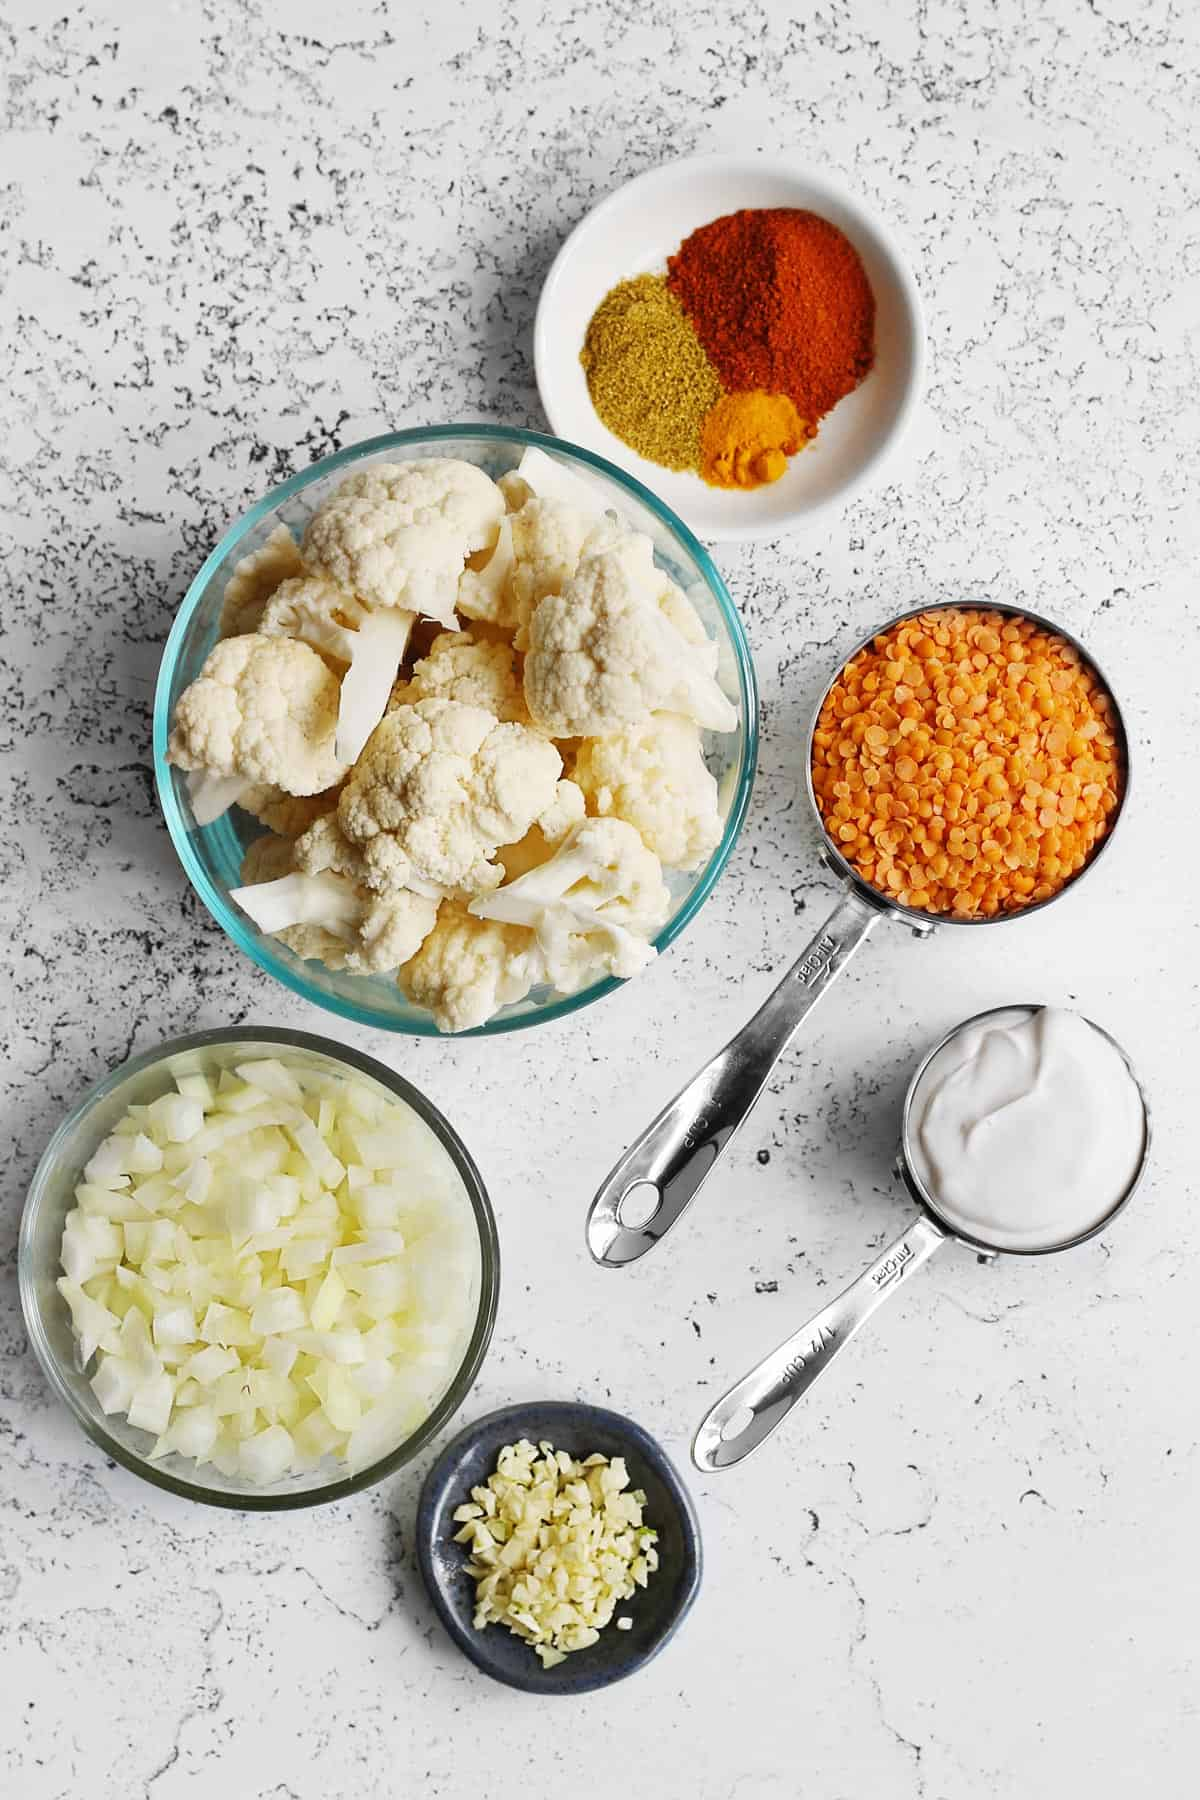 Curry cauliflower and lentils ingredients